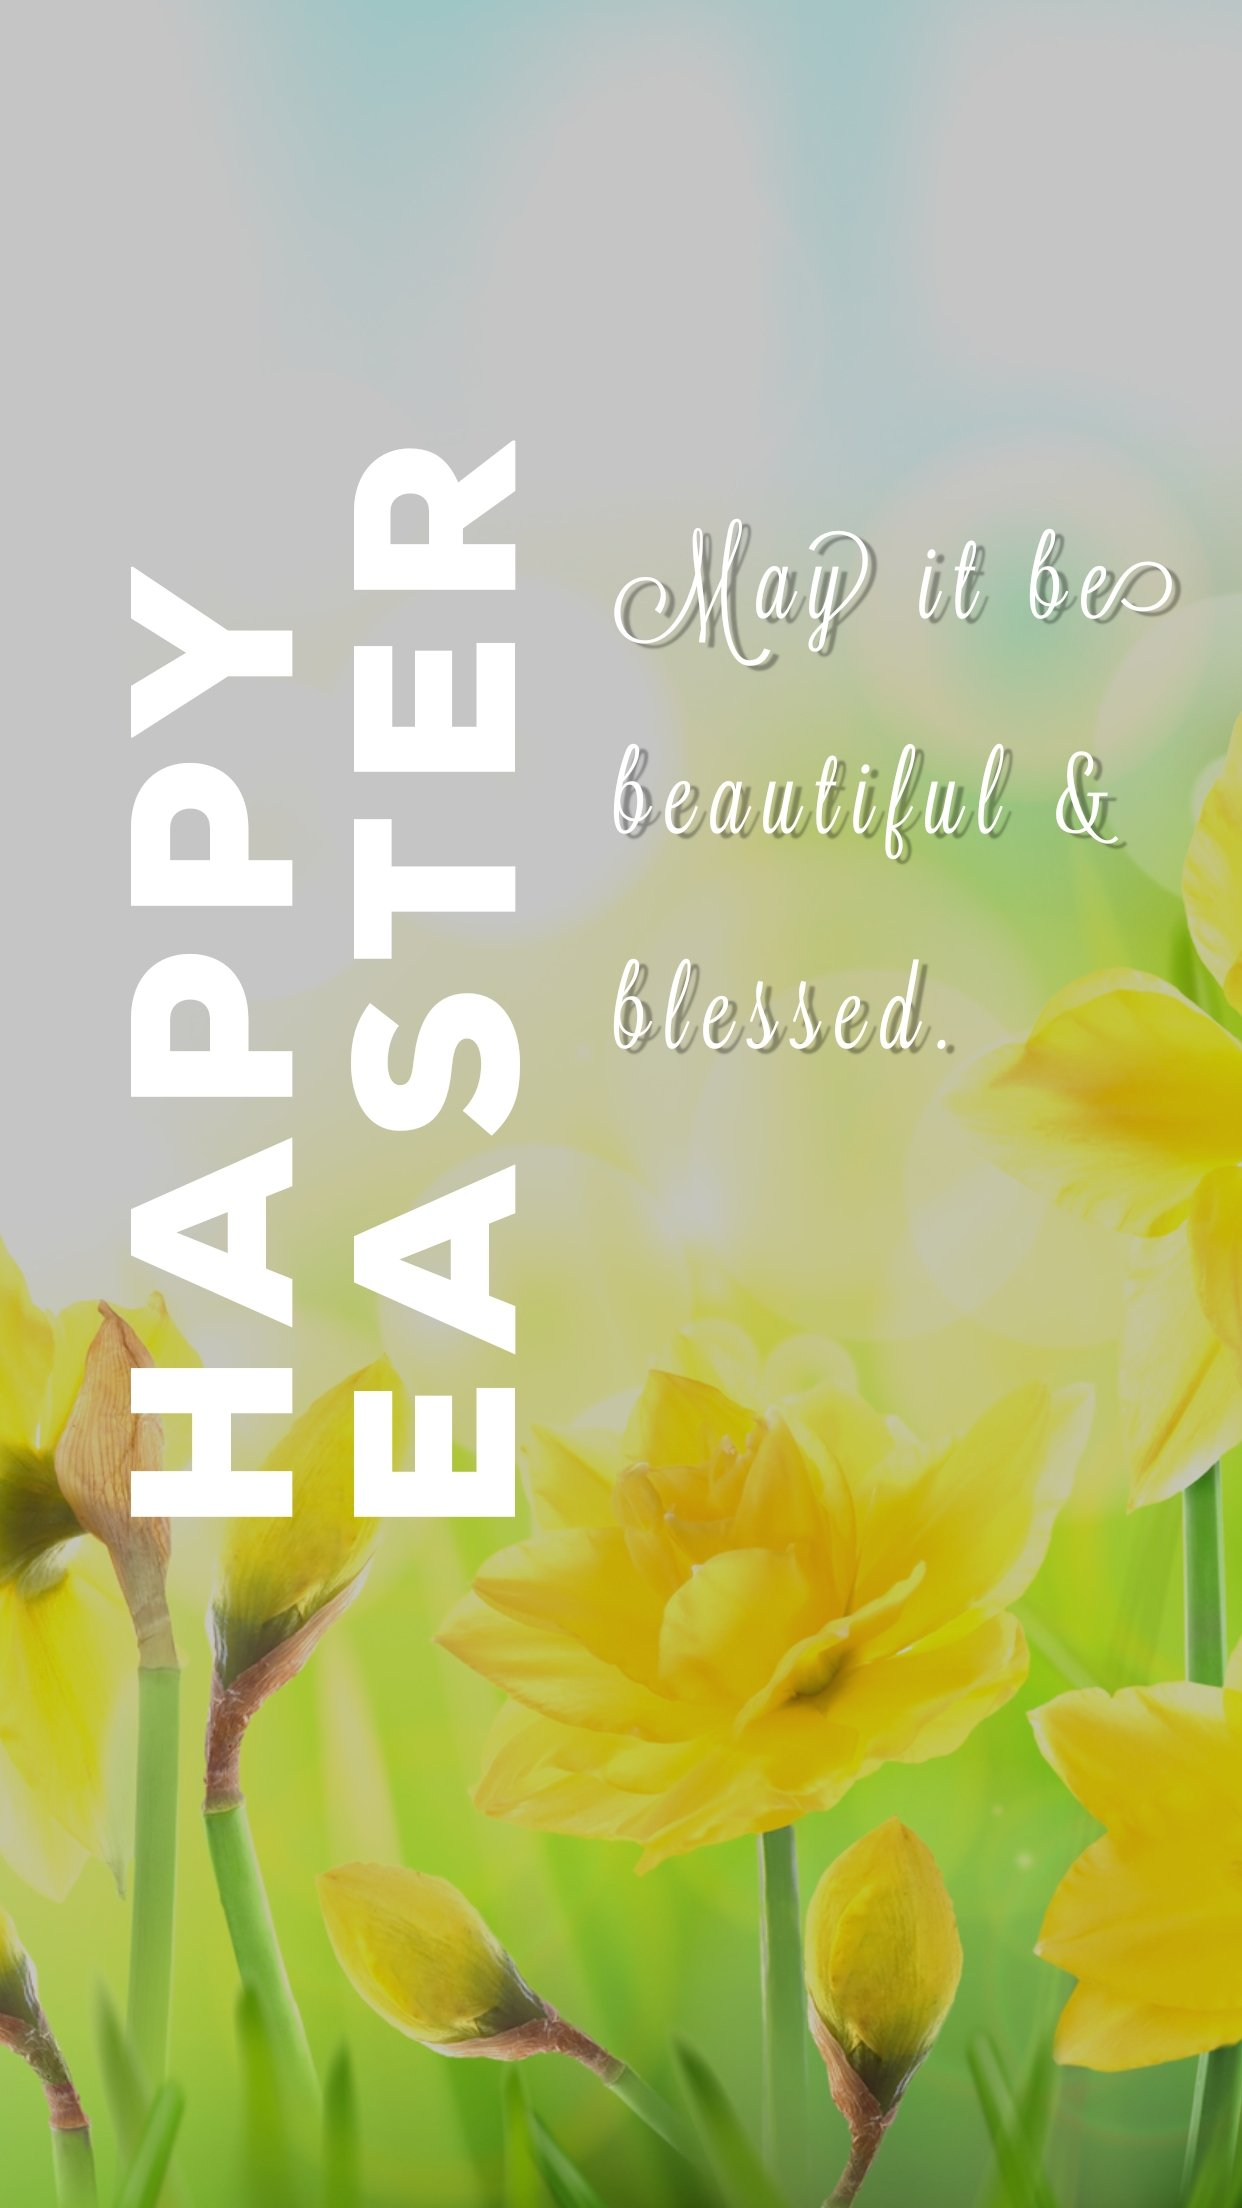 Happy Easter - image of daffodils, pretty flowers